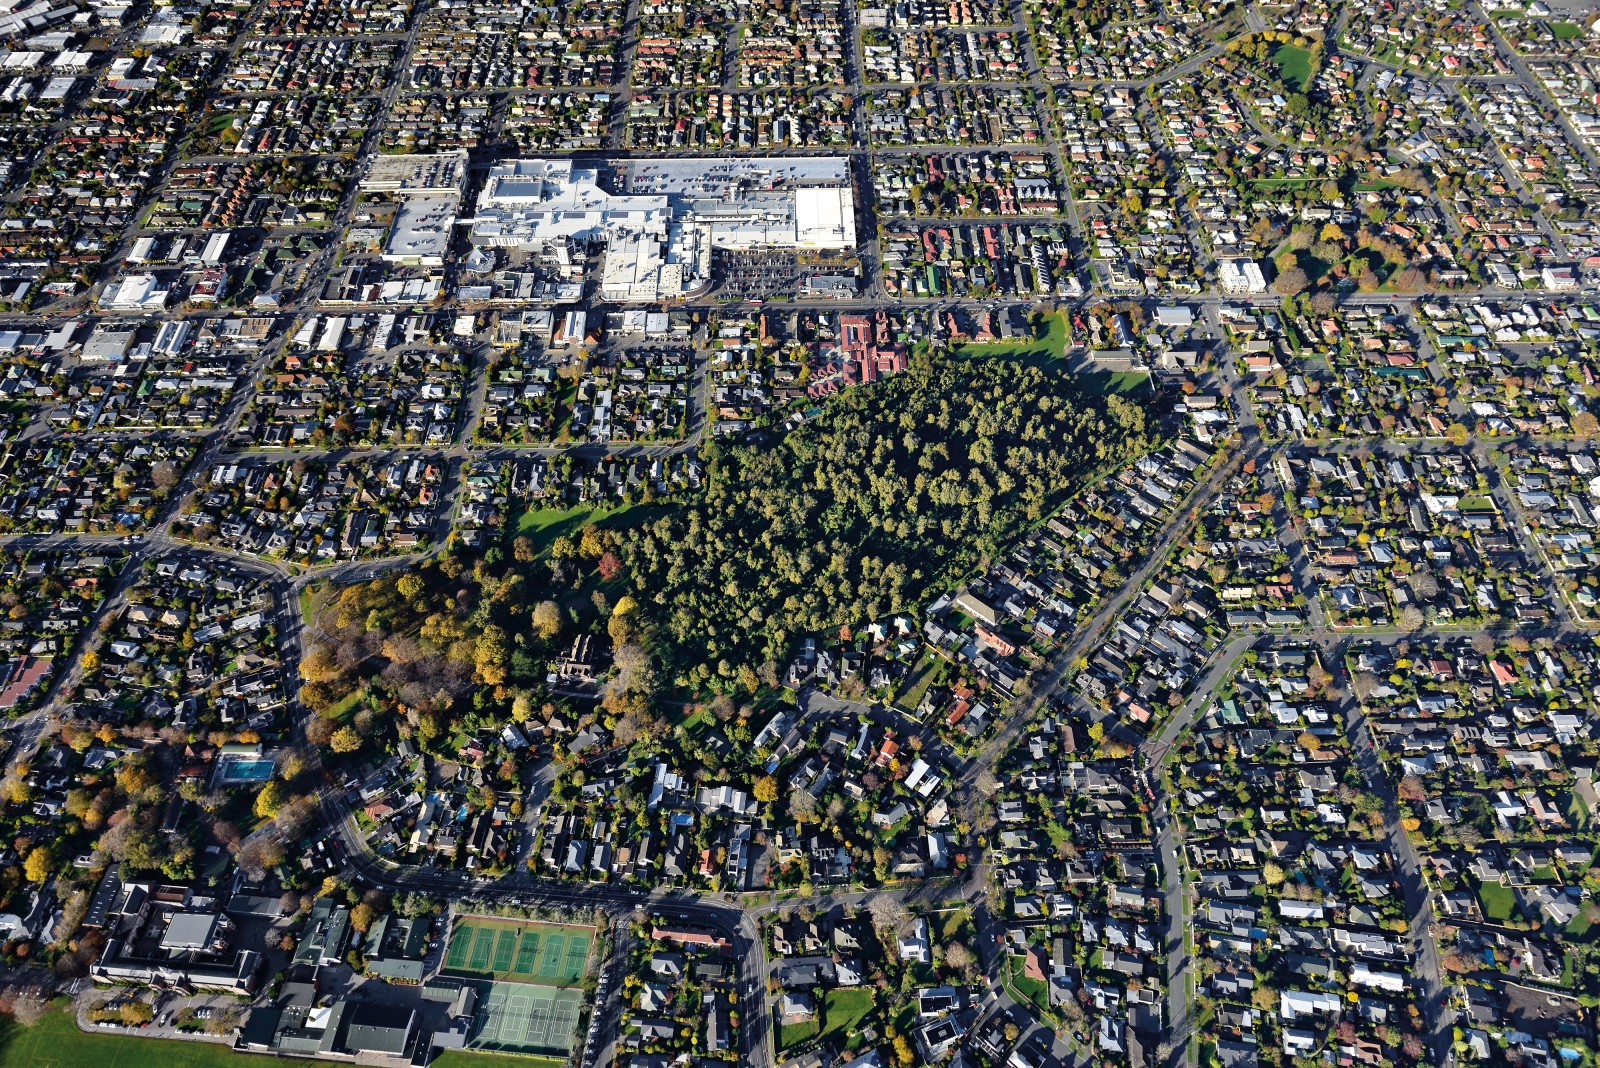 Covering much the same area as the nearby shopping mall, Riccarton Bush (also known as Deans Bush, after the family that bequeathed it to the city of Christchurch) is the last remnant of Canterbury's original indigenous forest. In this autumn photograph, a clear distinction can be seen between evergreen native forest to the right and introduced deciduous trees to the left of the Deans' former homestead.